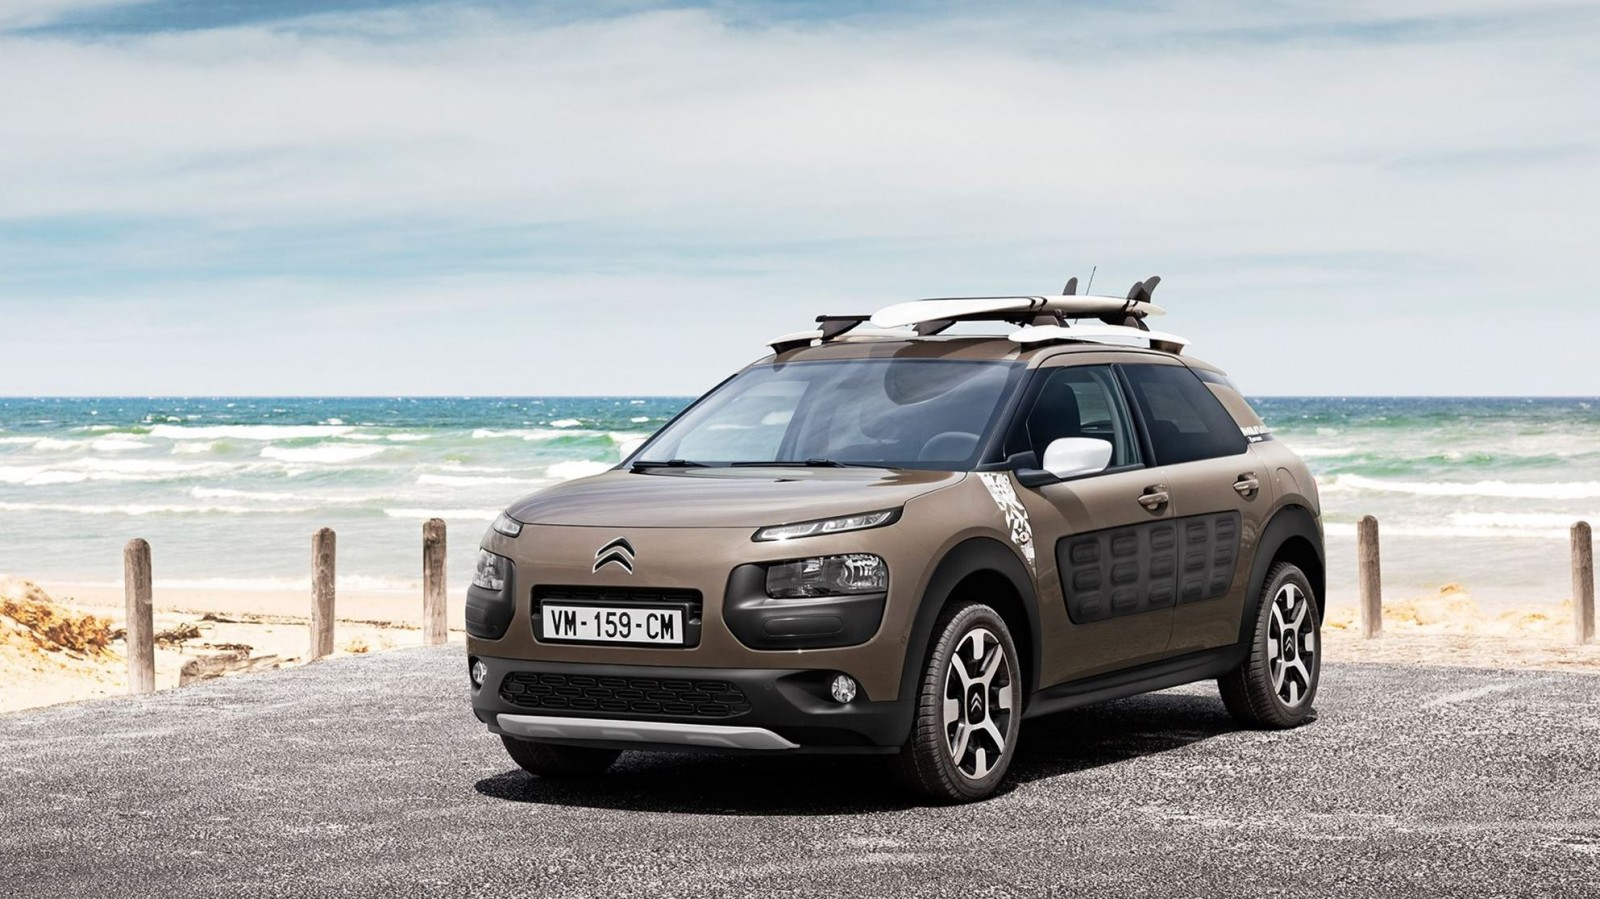 2016 citroen c4 cactus rip curl edition dark detailing gripcontrol glass roof for surfer. Black Bedroom Furniture Sets. Home Design Ideas